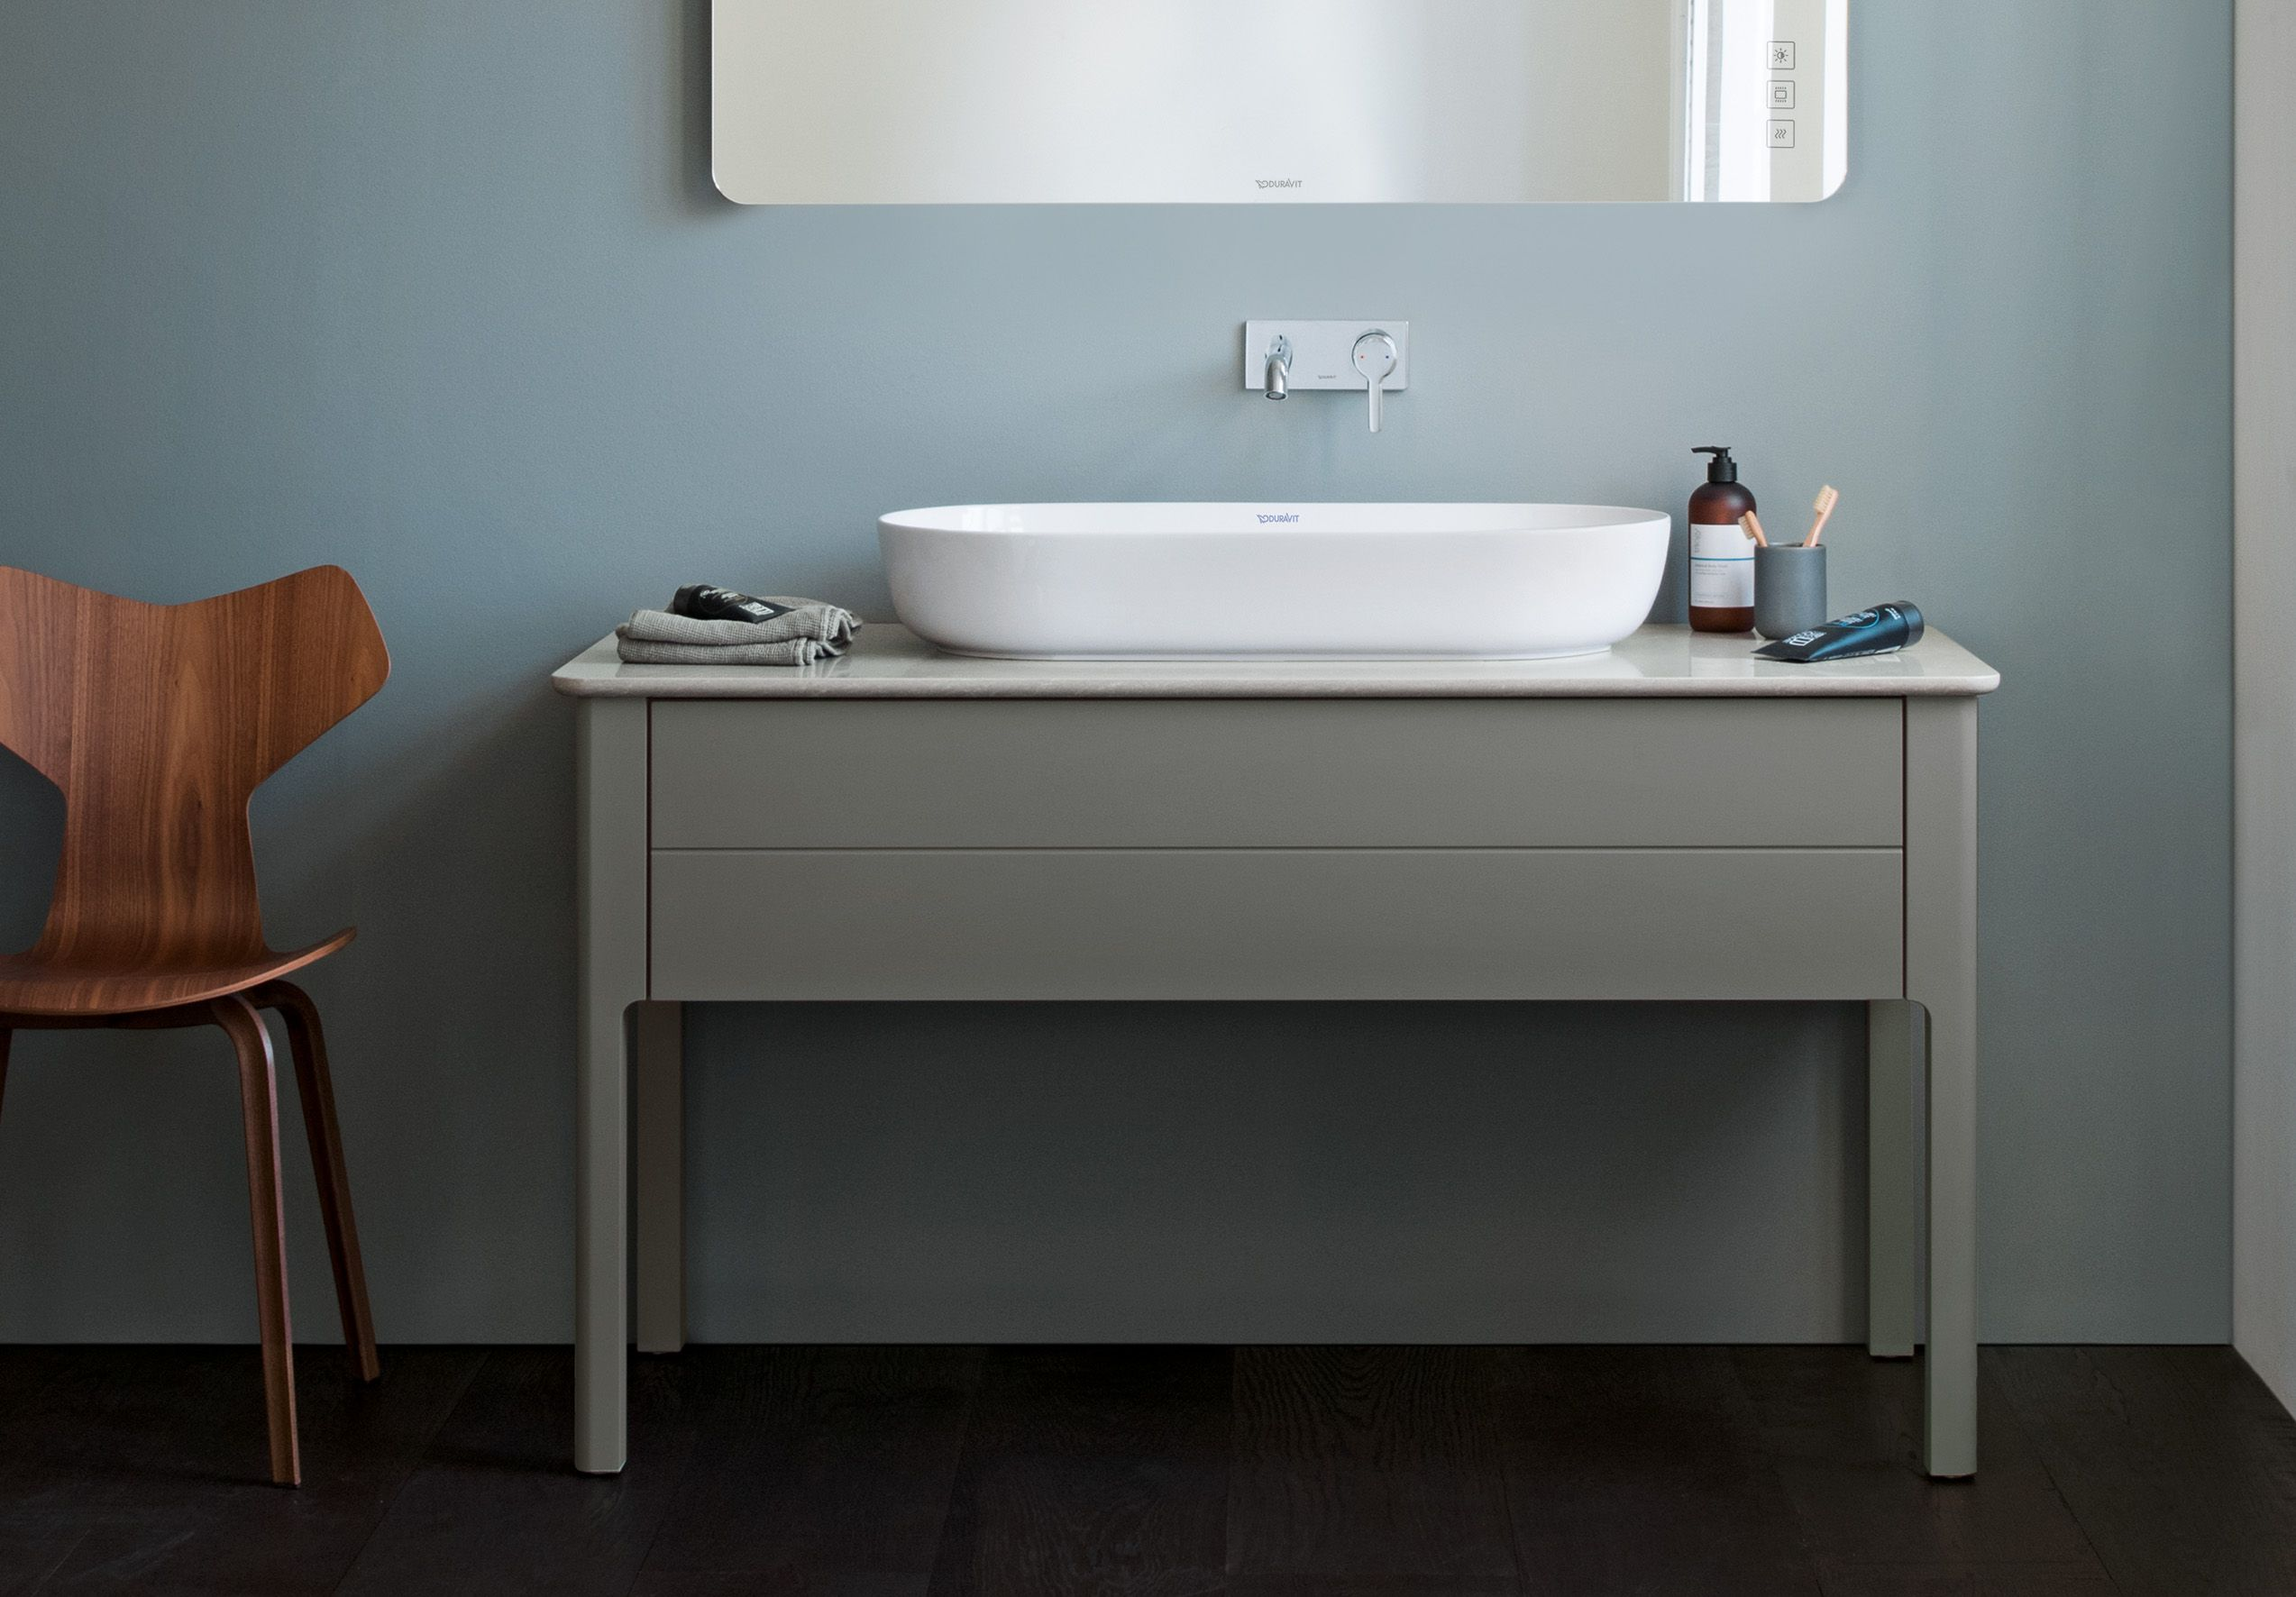 Kaufen Duravit Traditionellen Badmöbel Duravit London